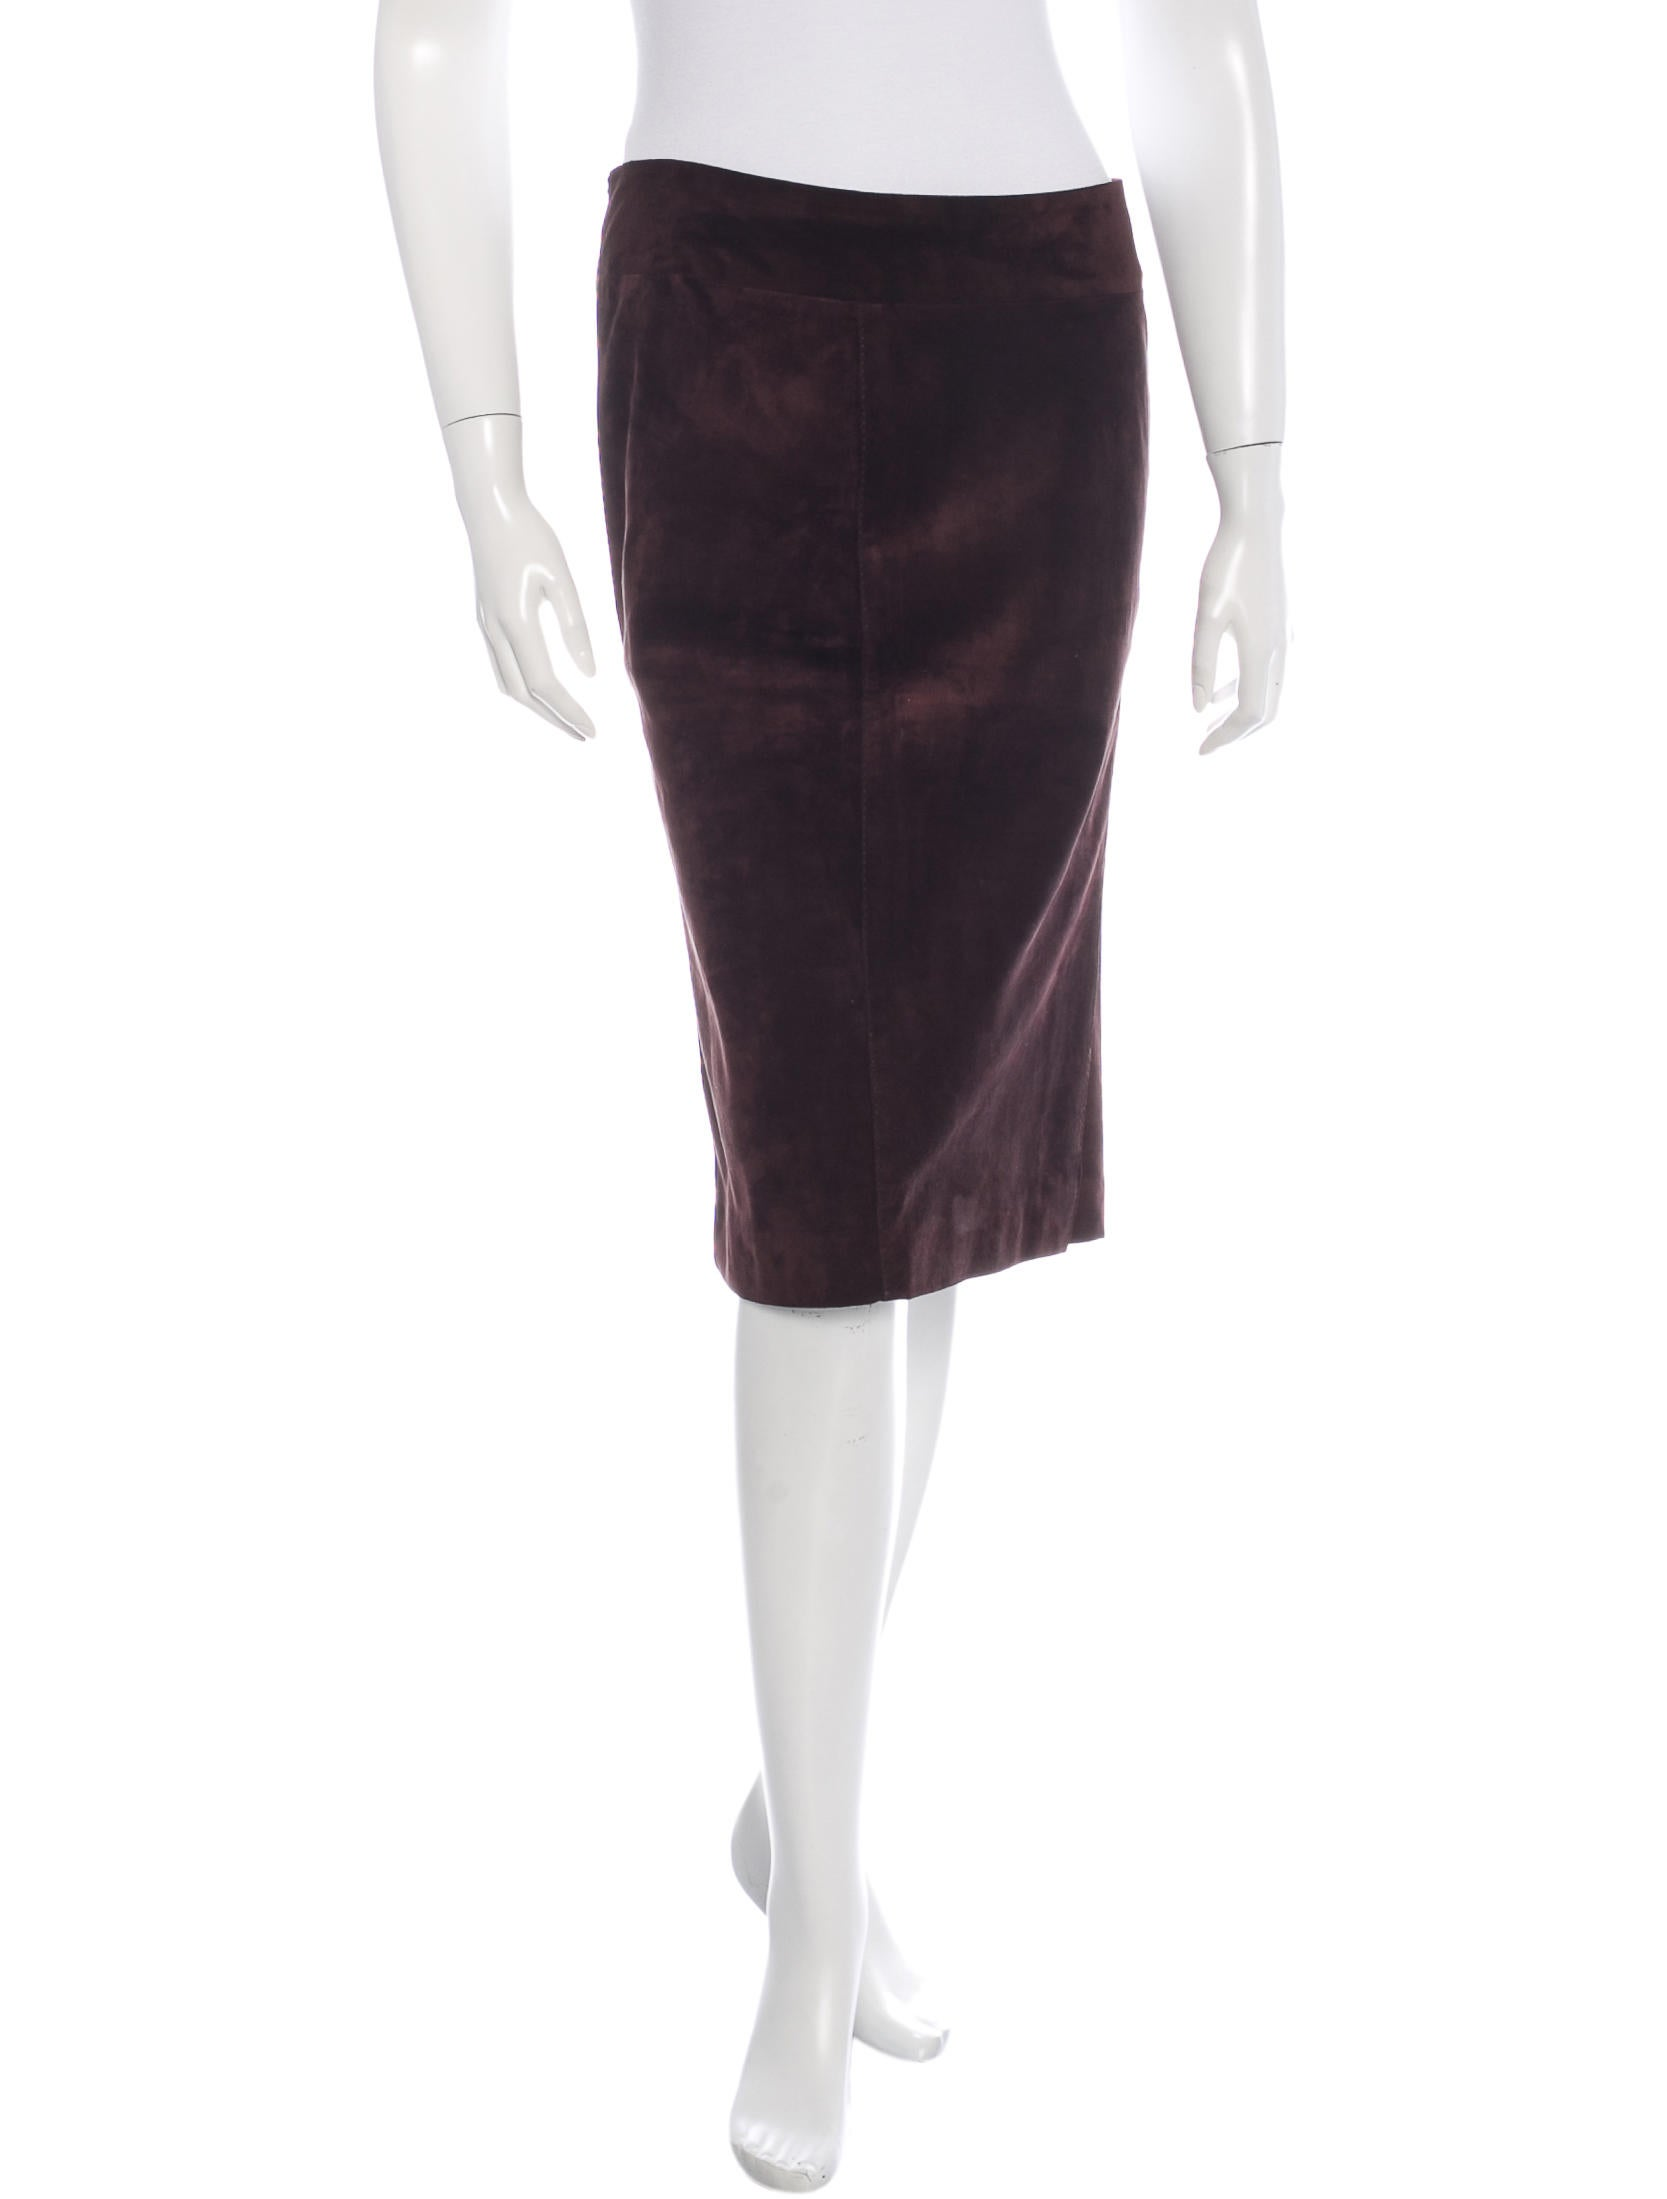 Gucci Suede Pencil Skirt - Clothing - GUC101482   The RealReal